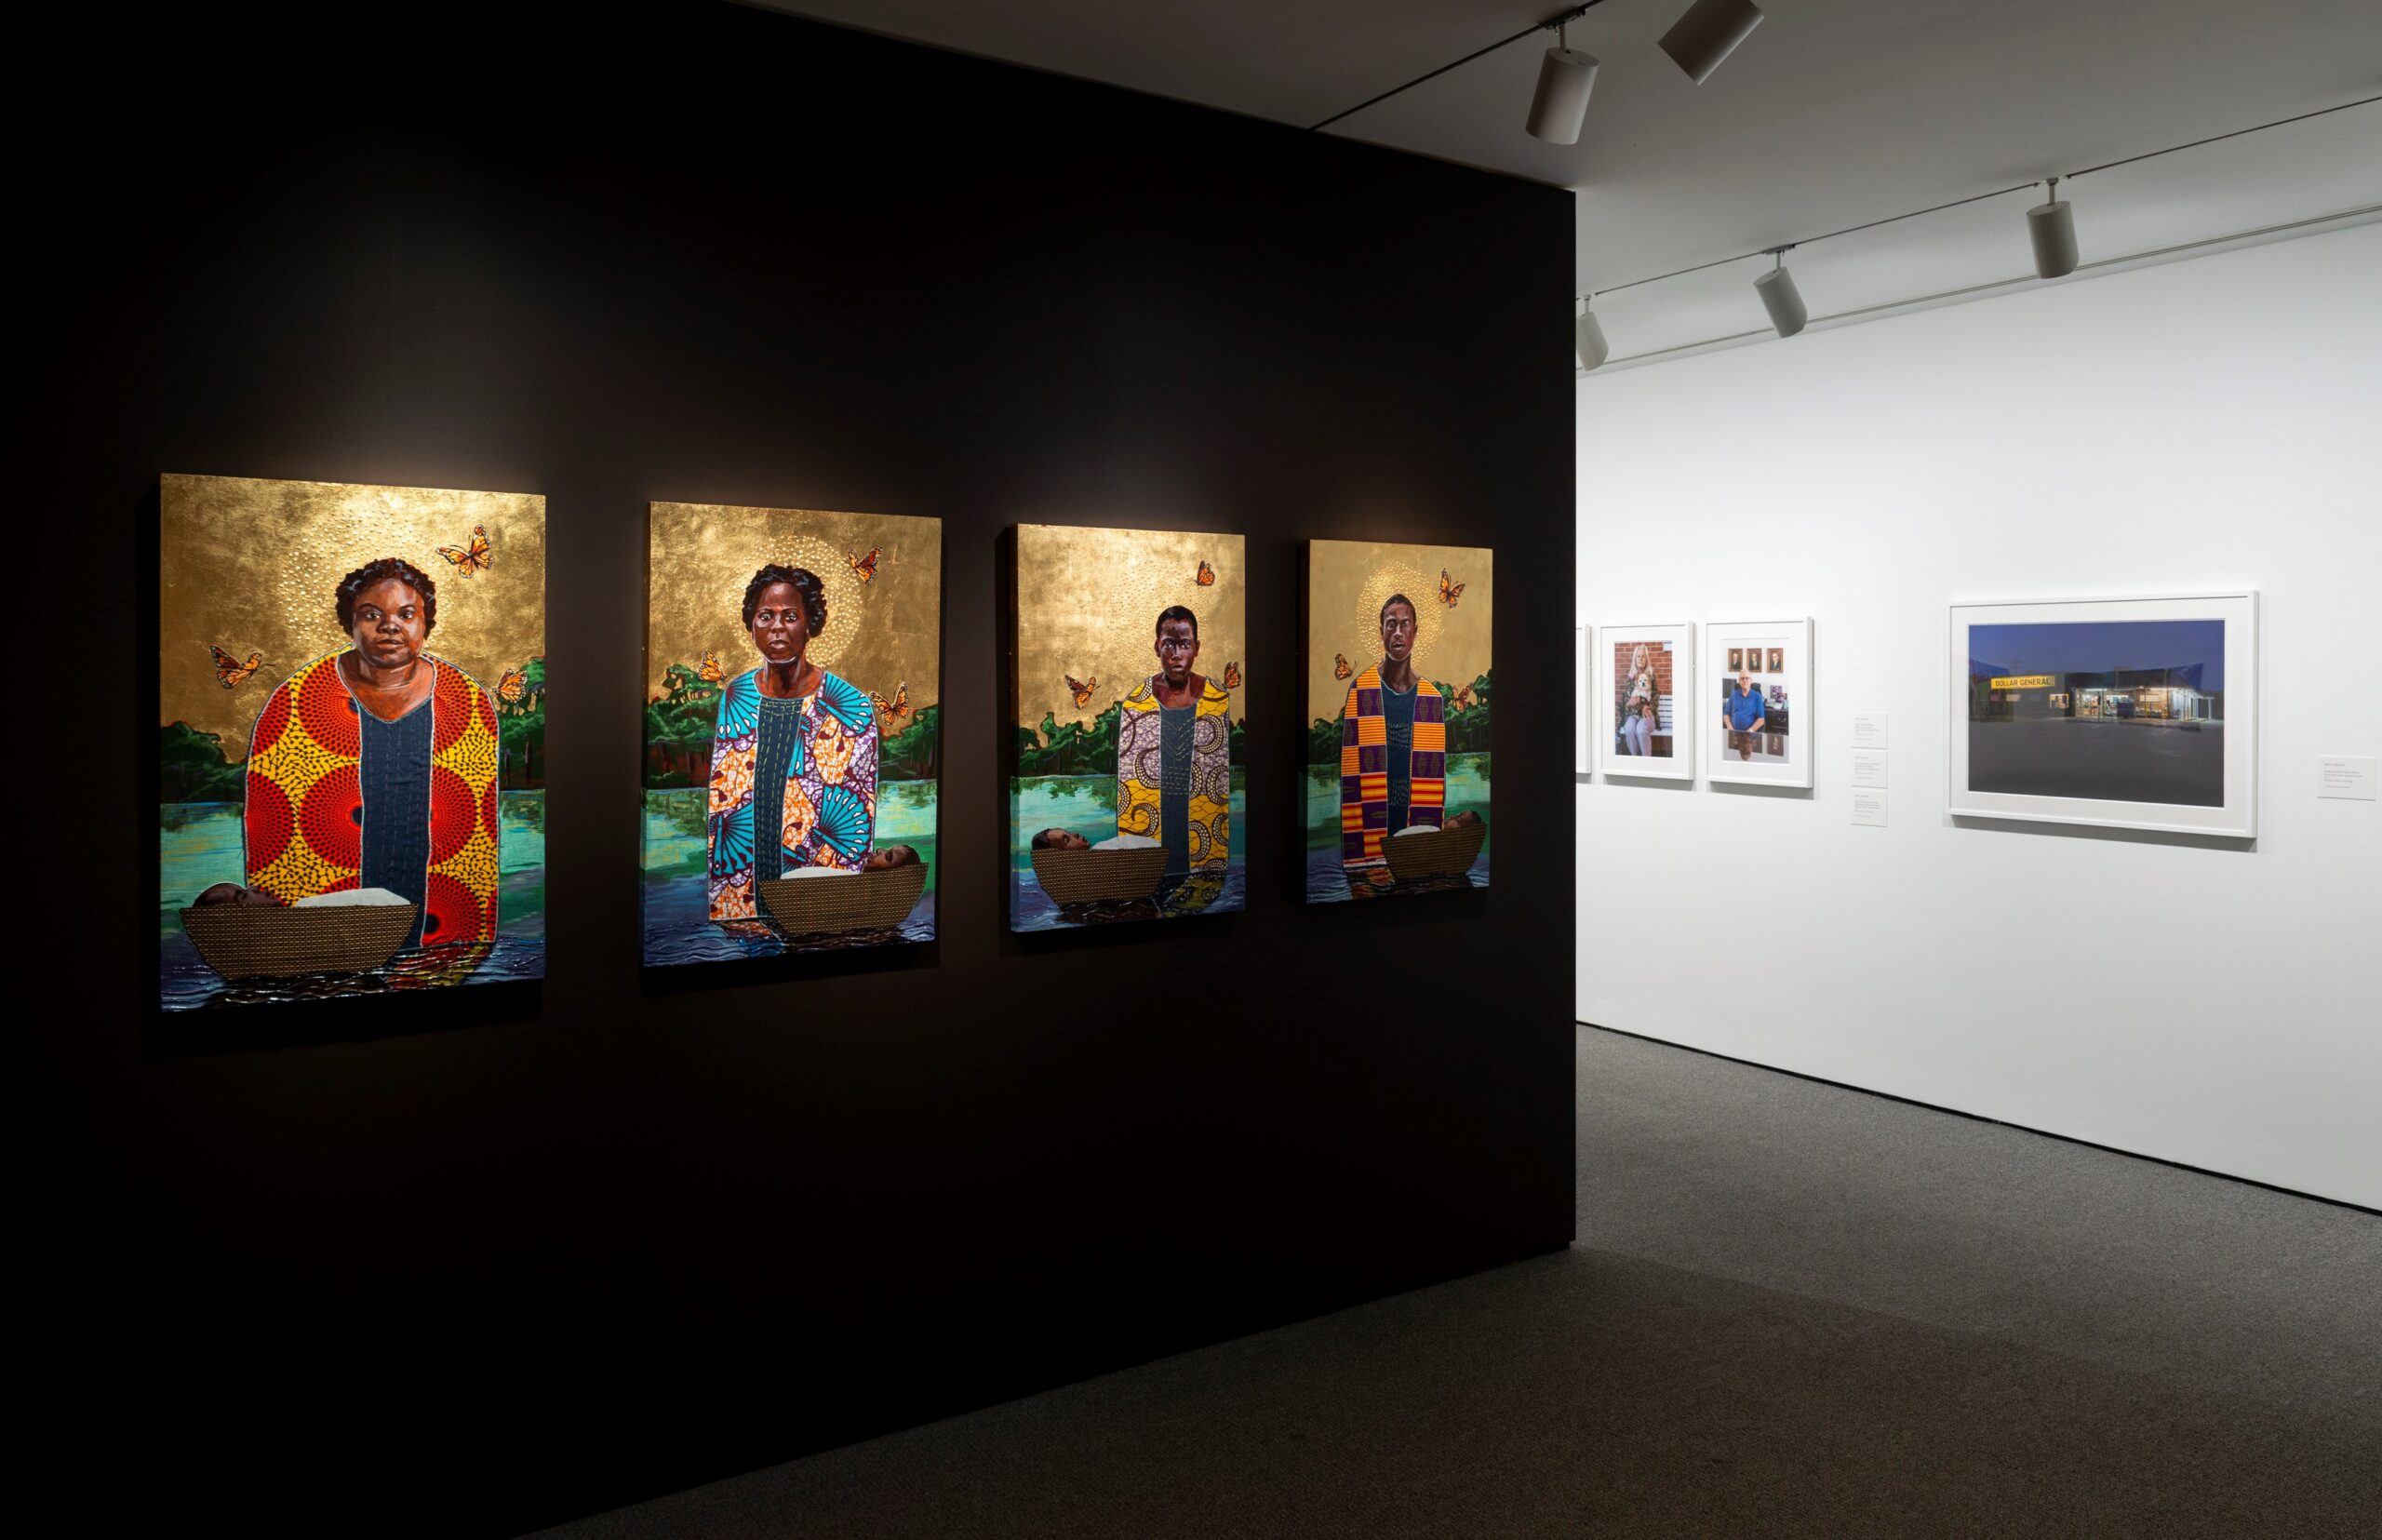 Installation view of works by 2018 Artscape Prize Finalists Stephen Towns and Nate Larsen. Photo by Mitro Hood.